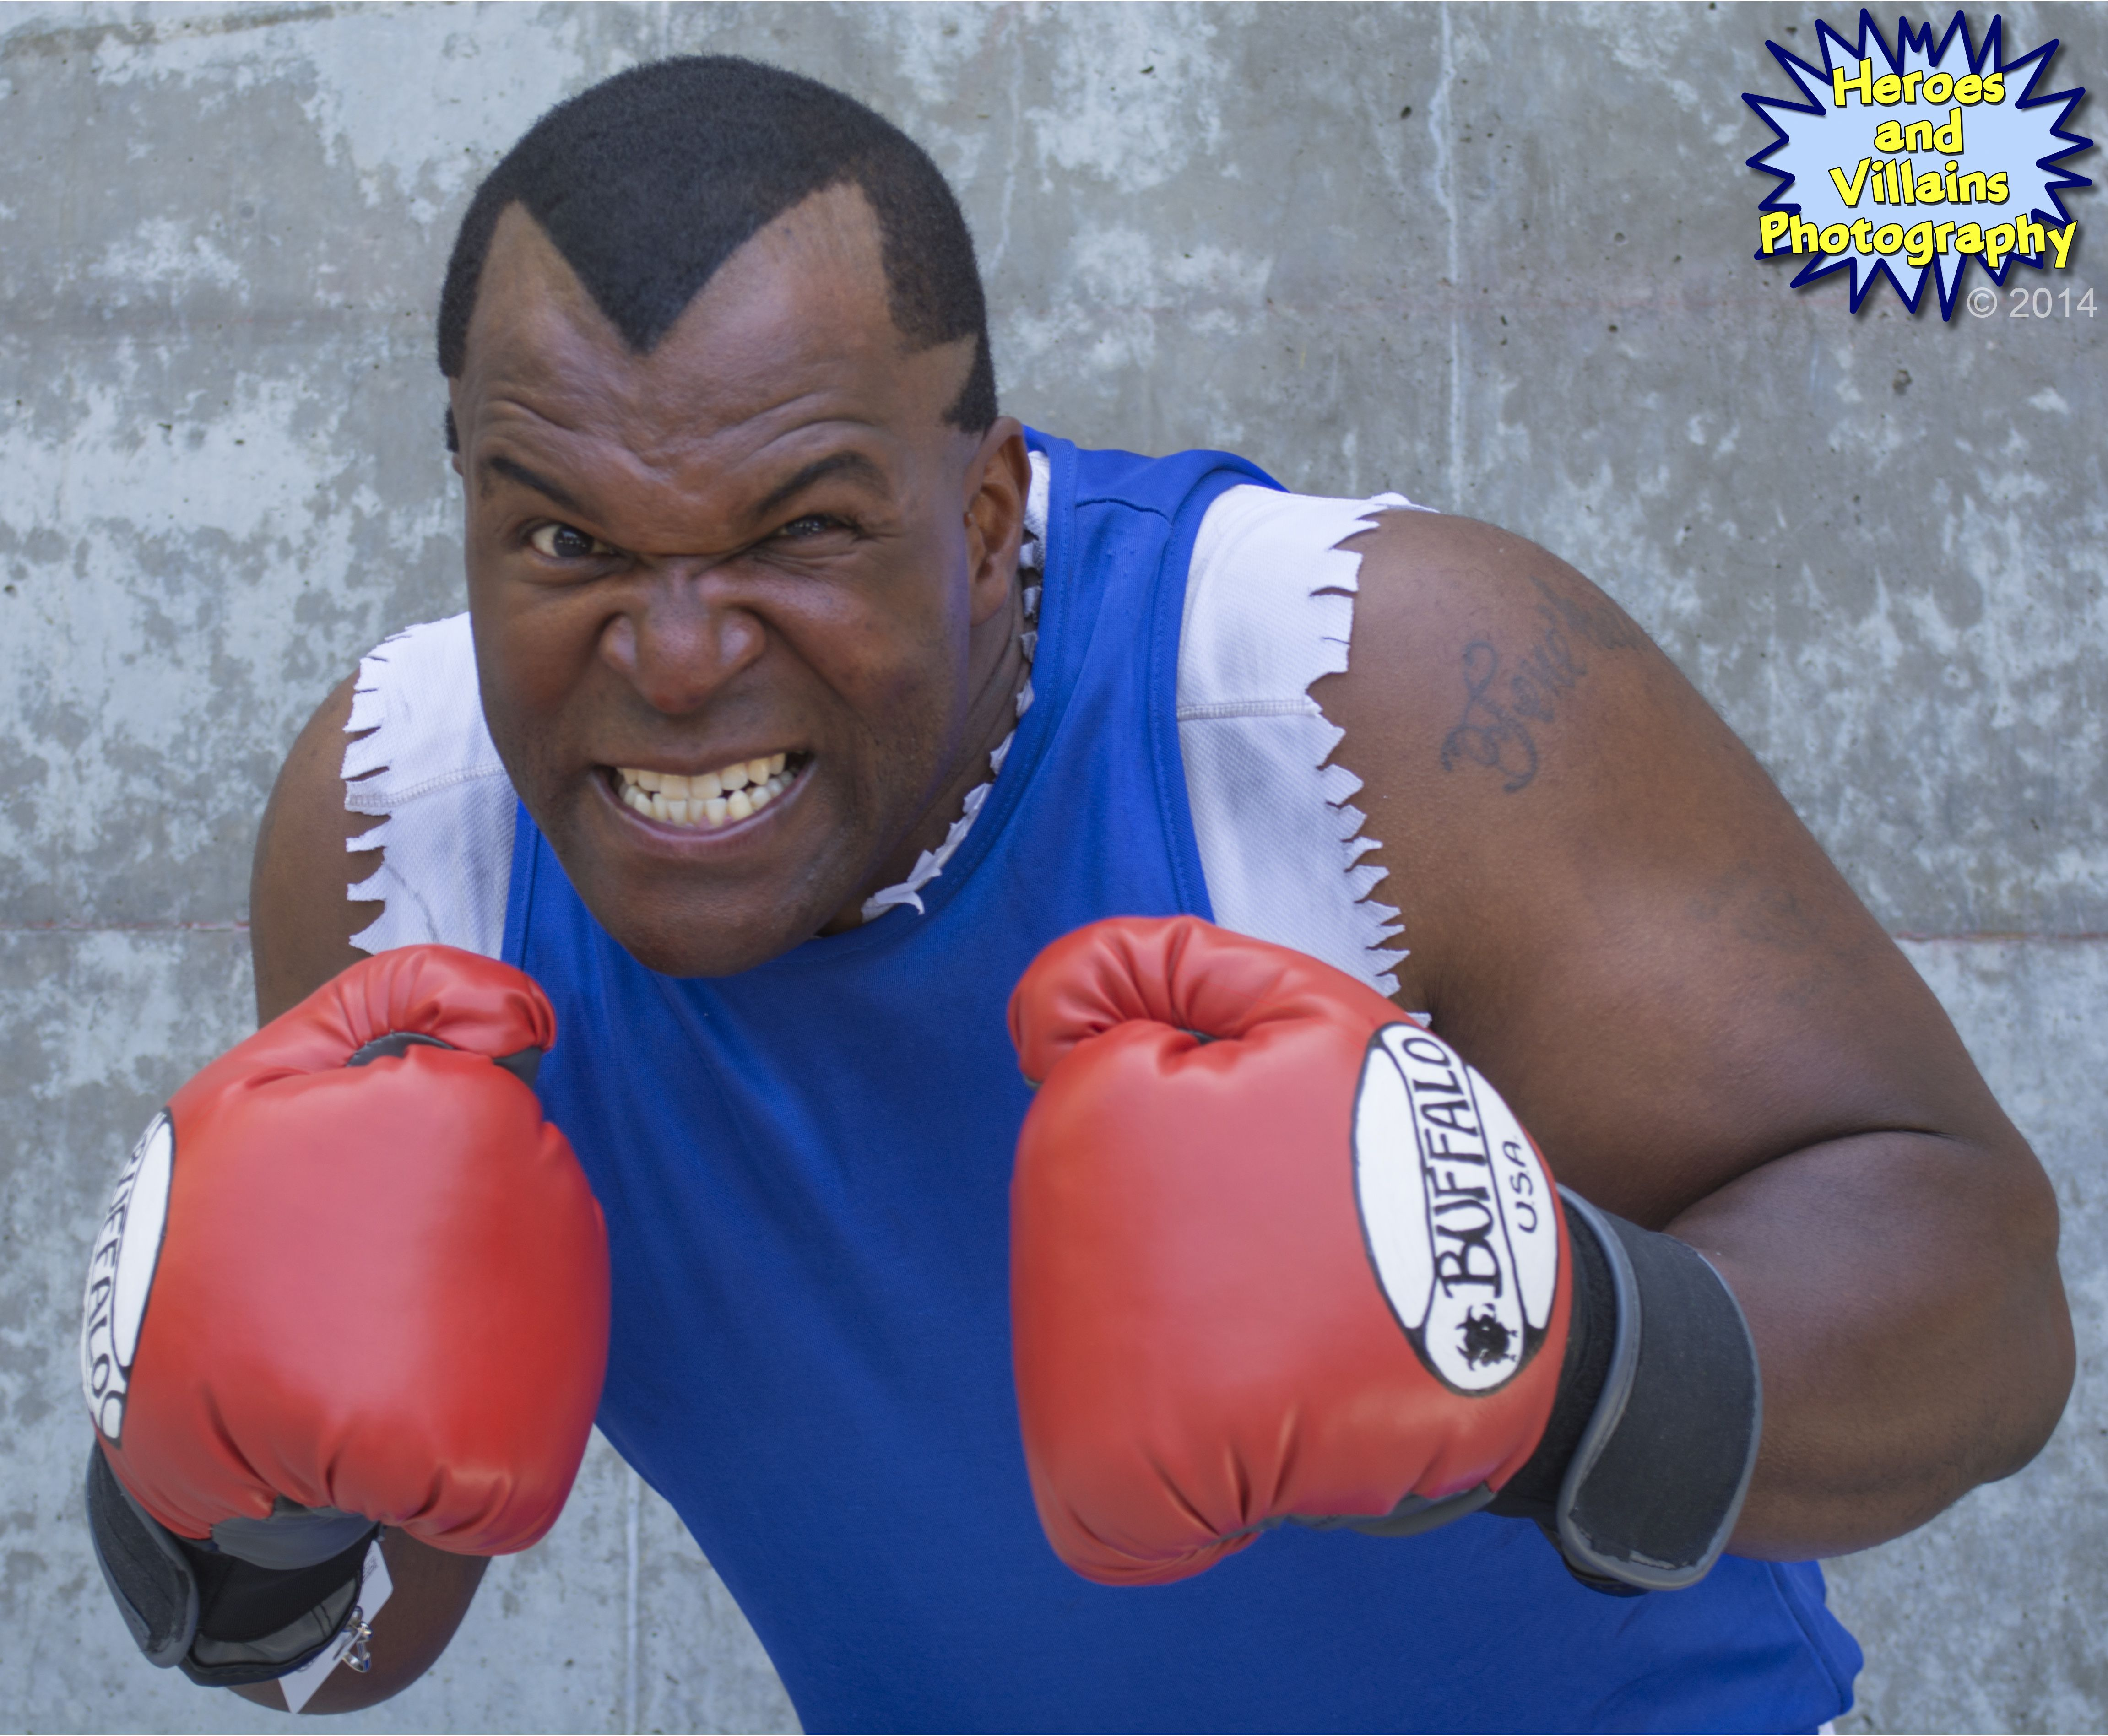 538f94455 Mike Tyson from Mike Tyson's Punch Out cosplay at FanimeCon in San Jose,  2014.